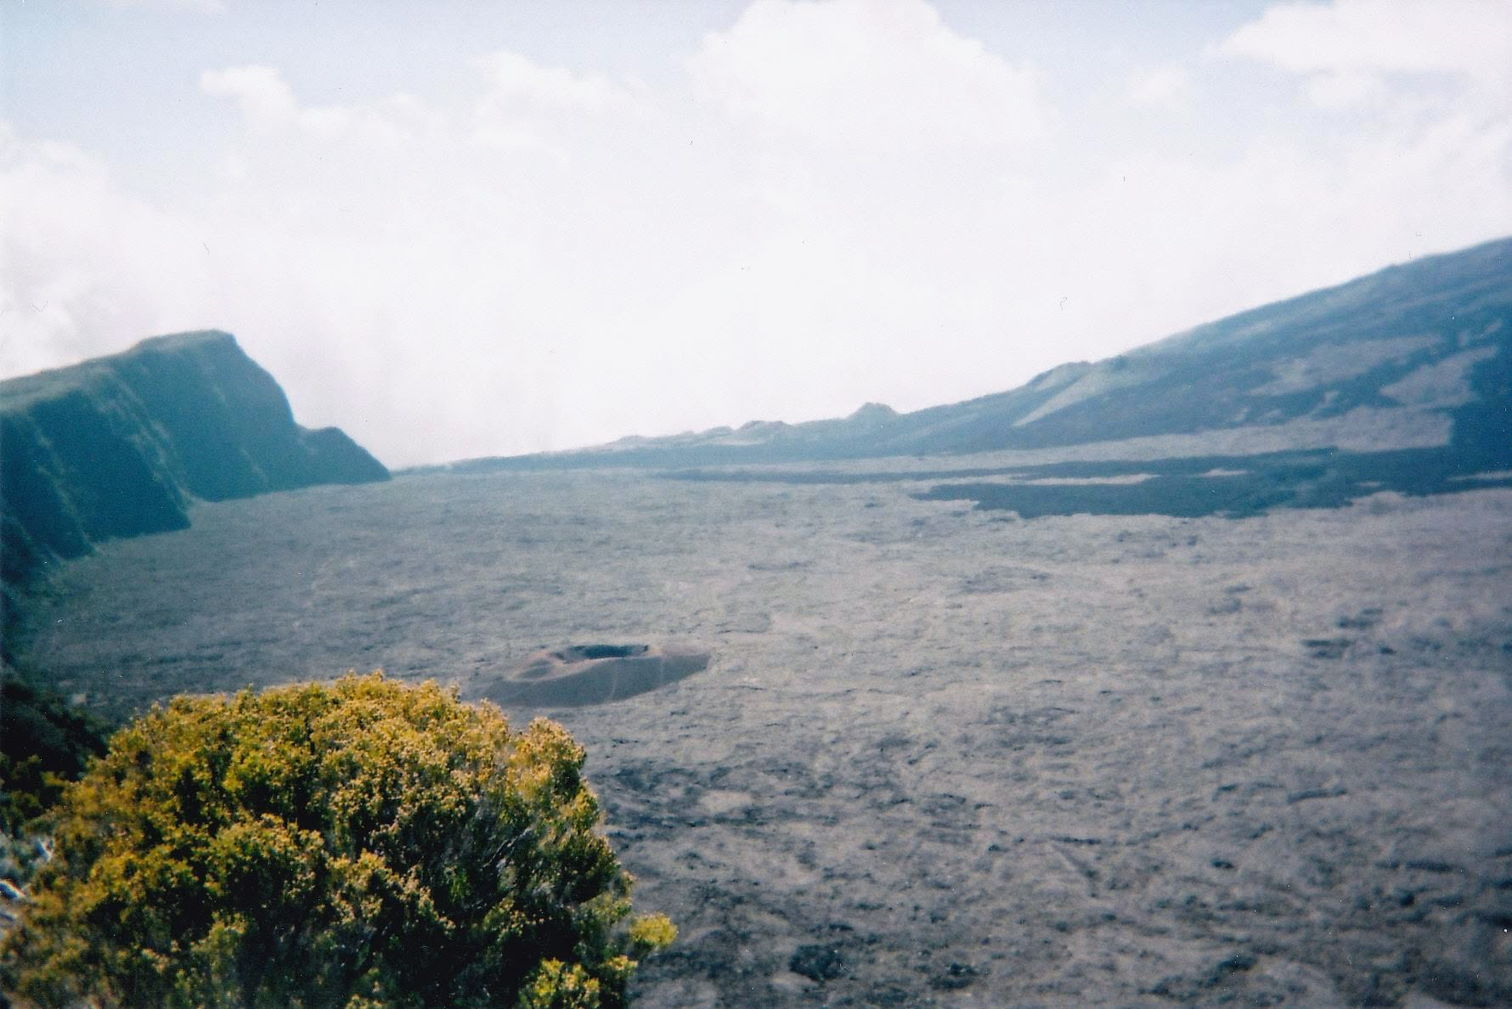 Piton de la Fournaise (taken on the disposable camera)